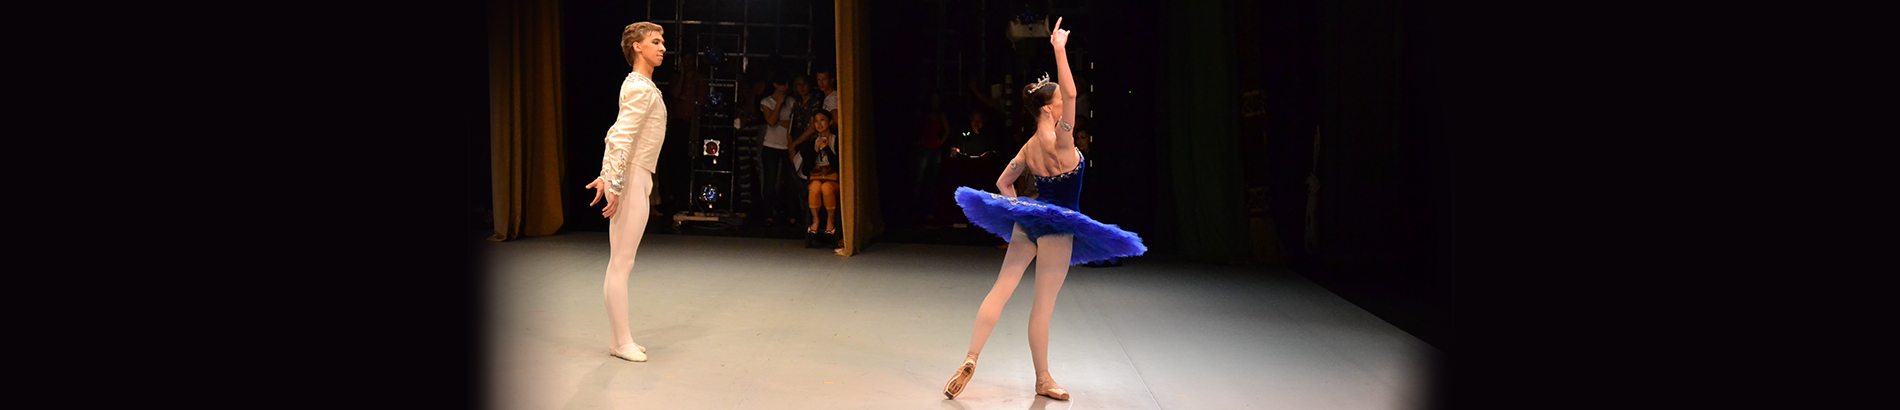 XIII Moscow International Ballet Competition: Opening Ceremony